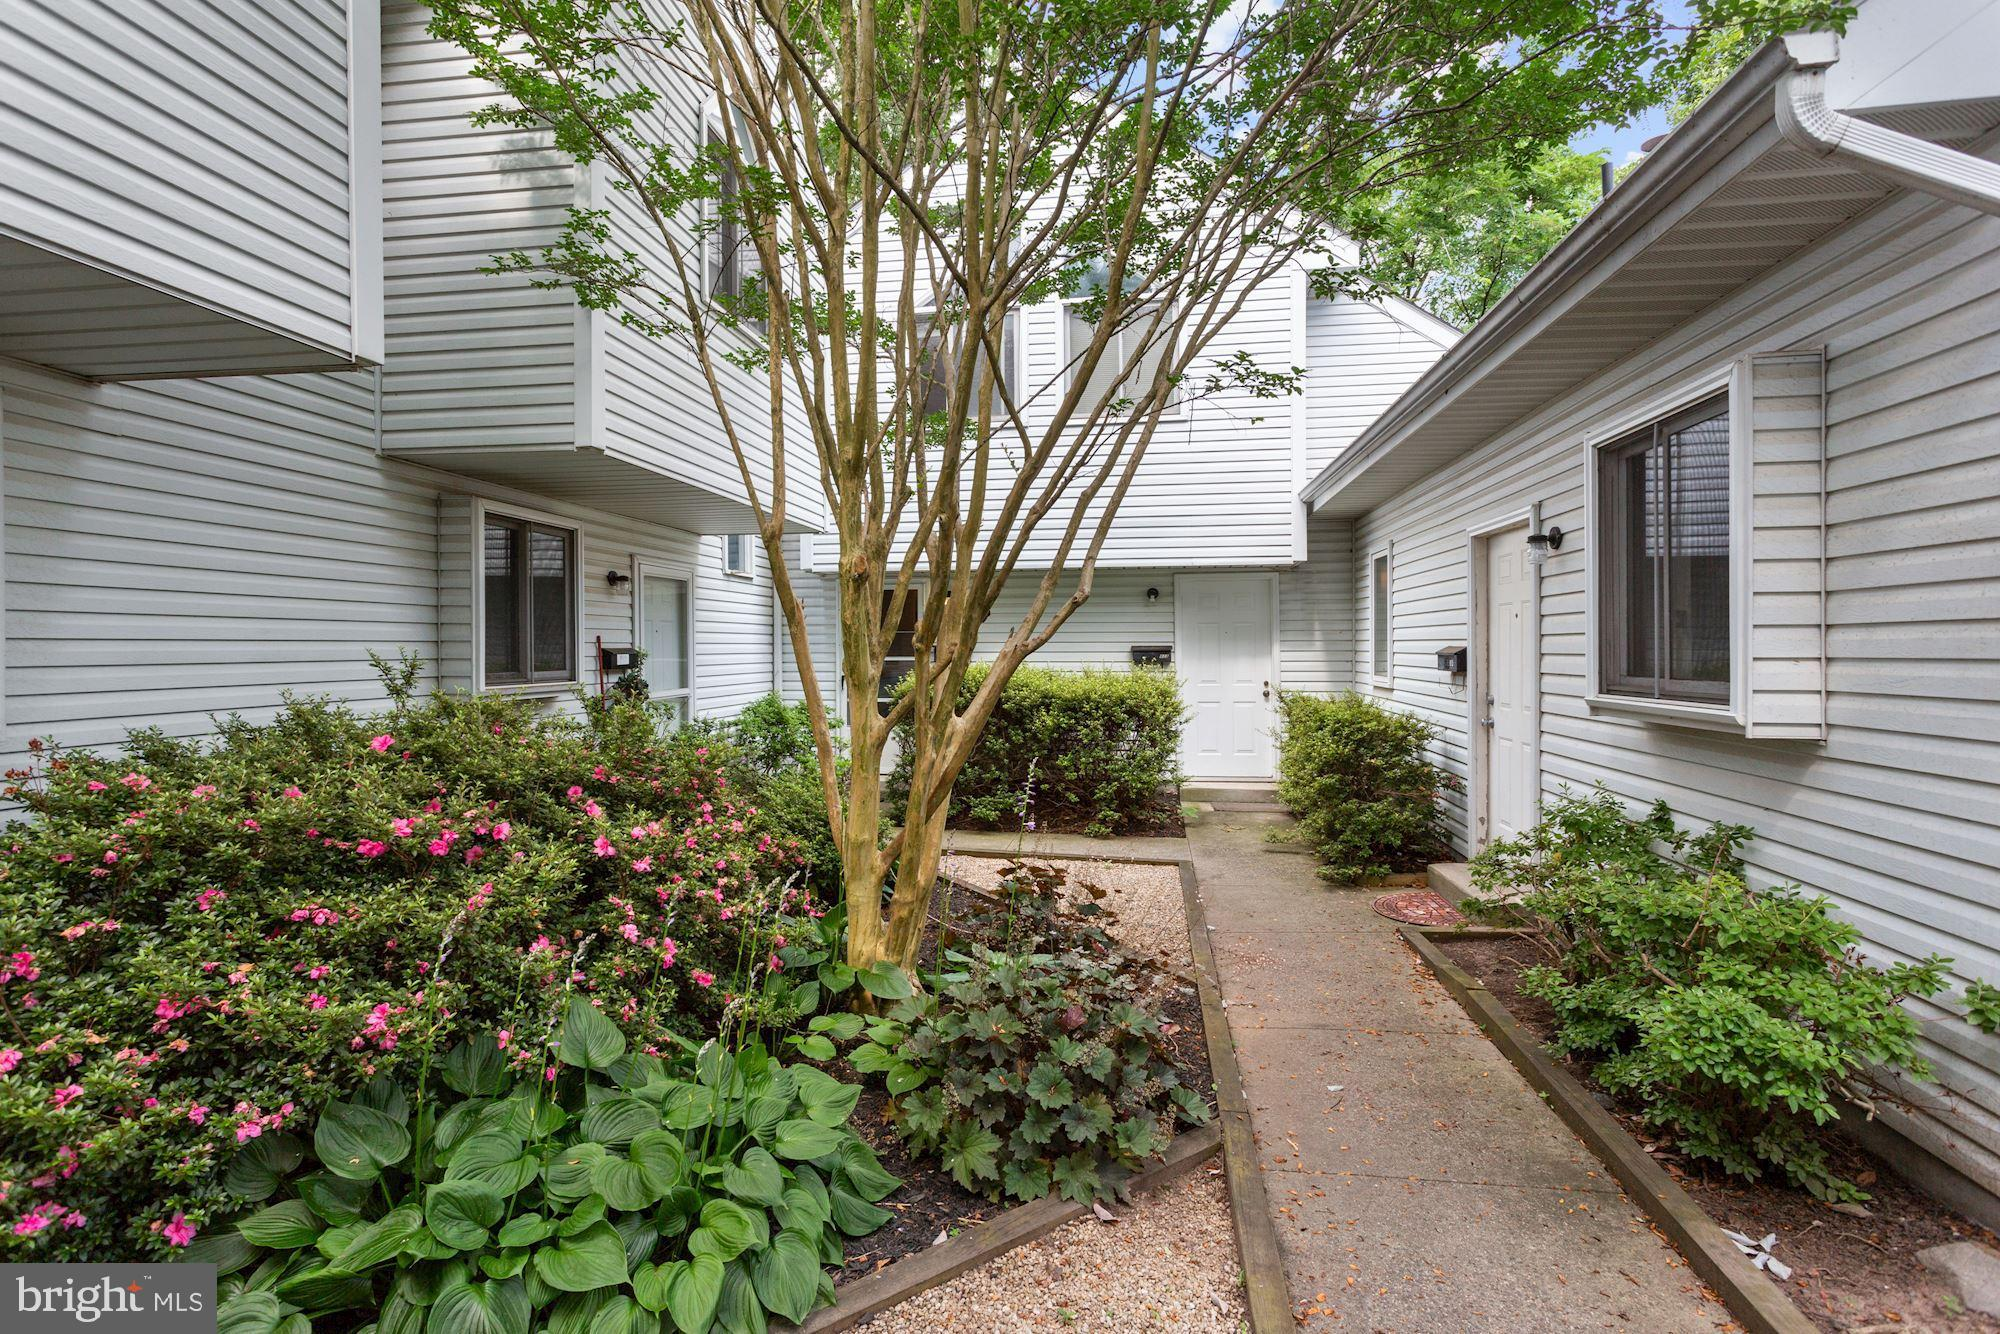 This unique 2BR/2BA garden style condo is located in the heart of downtown Herndon. Open concept floorplan with loft/second bedroom and bath. Hardwood floors on main level.  Updated kitchen with granite, stainless steel appliances.  Updated baths with ceramic tile floors.   HVAC replaced in 2014. Enjoy your fenced in back yard.  Just minutes to town green, shopping, restaurants,  beer garden, W&OD Trail and much more. Don't miss out!